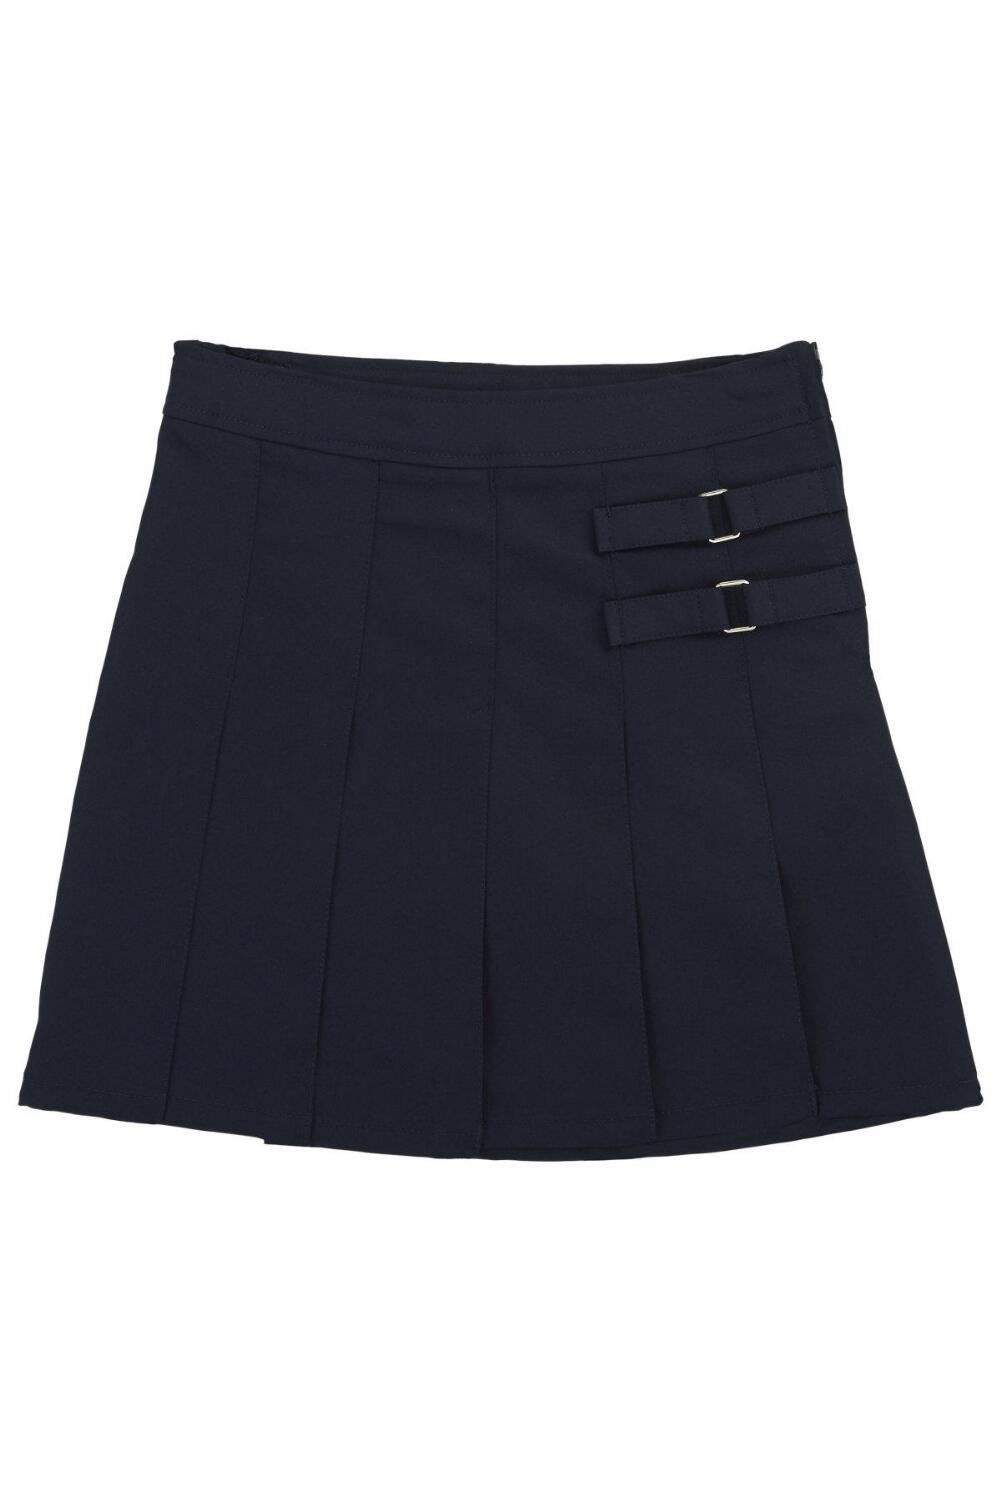 French Toast Little Girls' Toddler Two-Tab Pleated Scooter, Navy, 3T